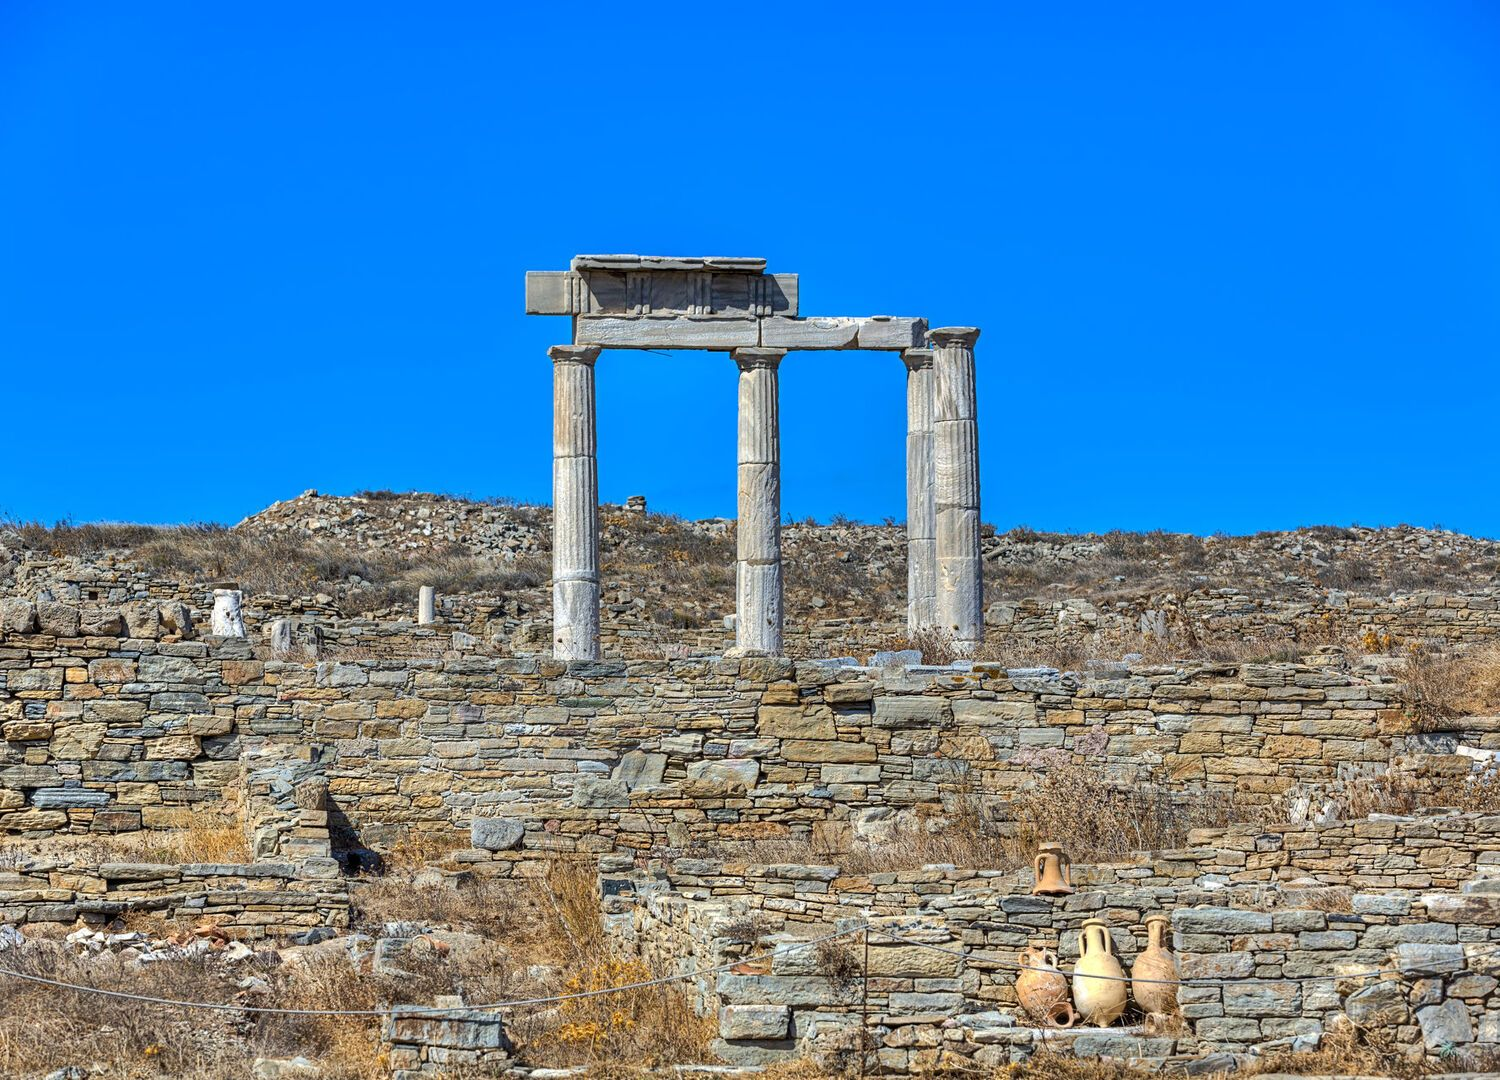 The island of Delos,one of the most important archaeological sites in Greece